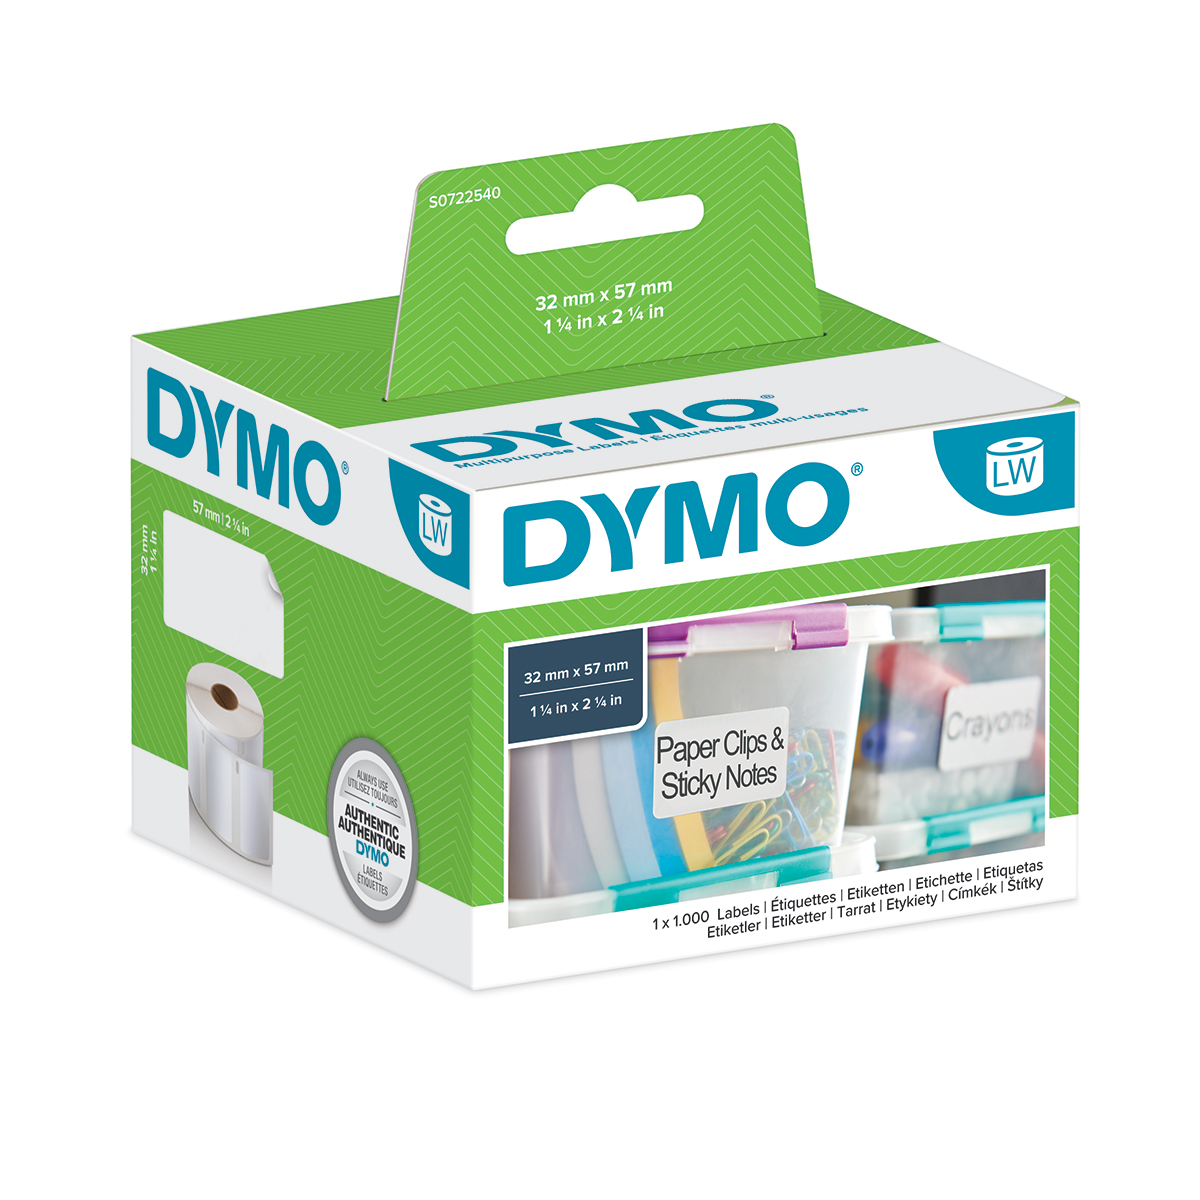 Dymo 11354 32mm x 57mm Multi Purpose Labels Black on White